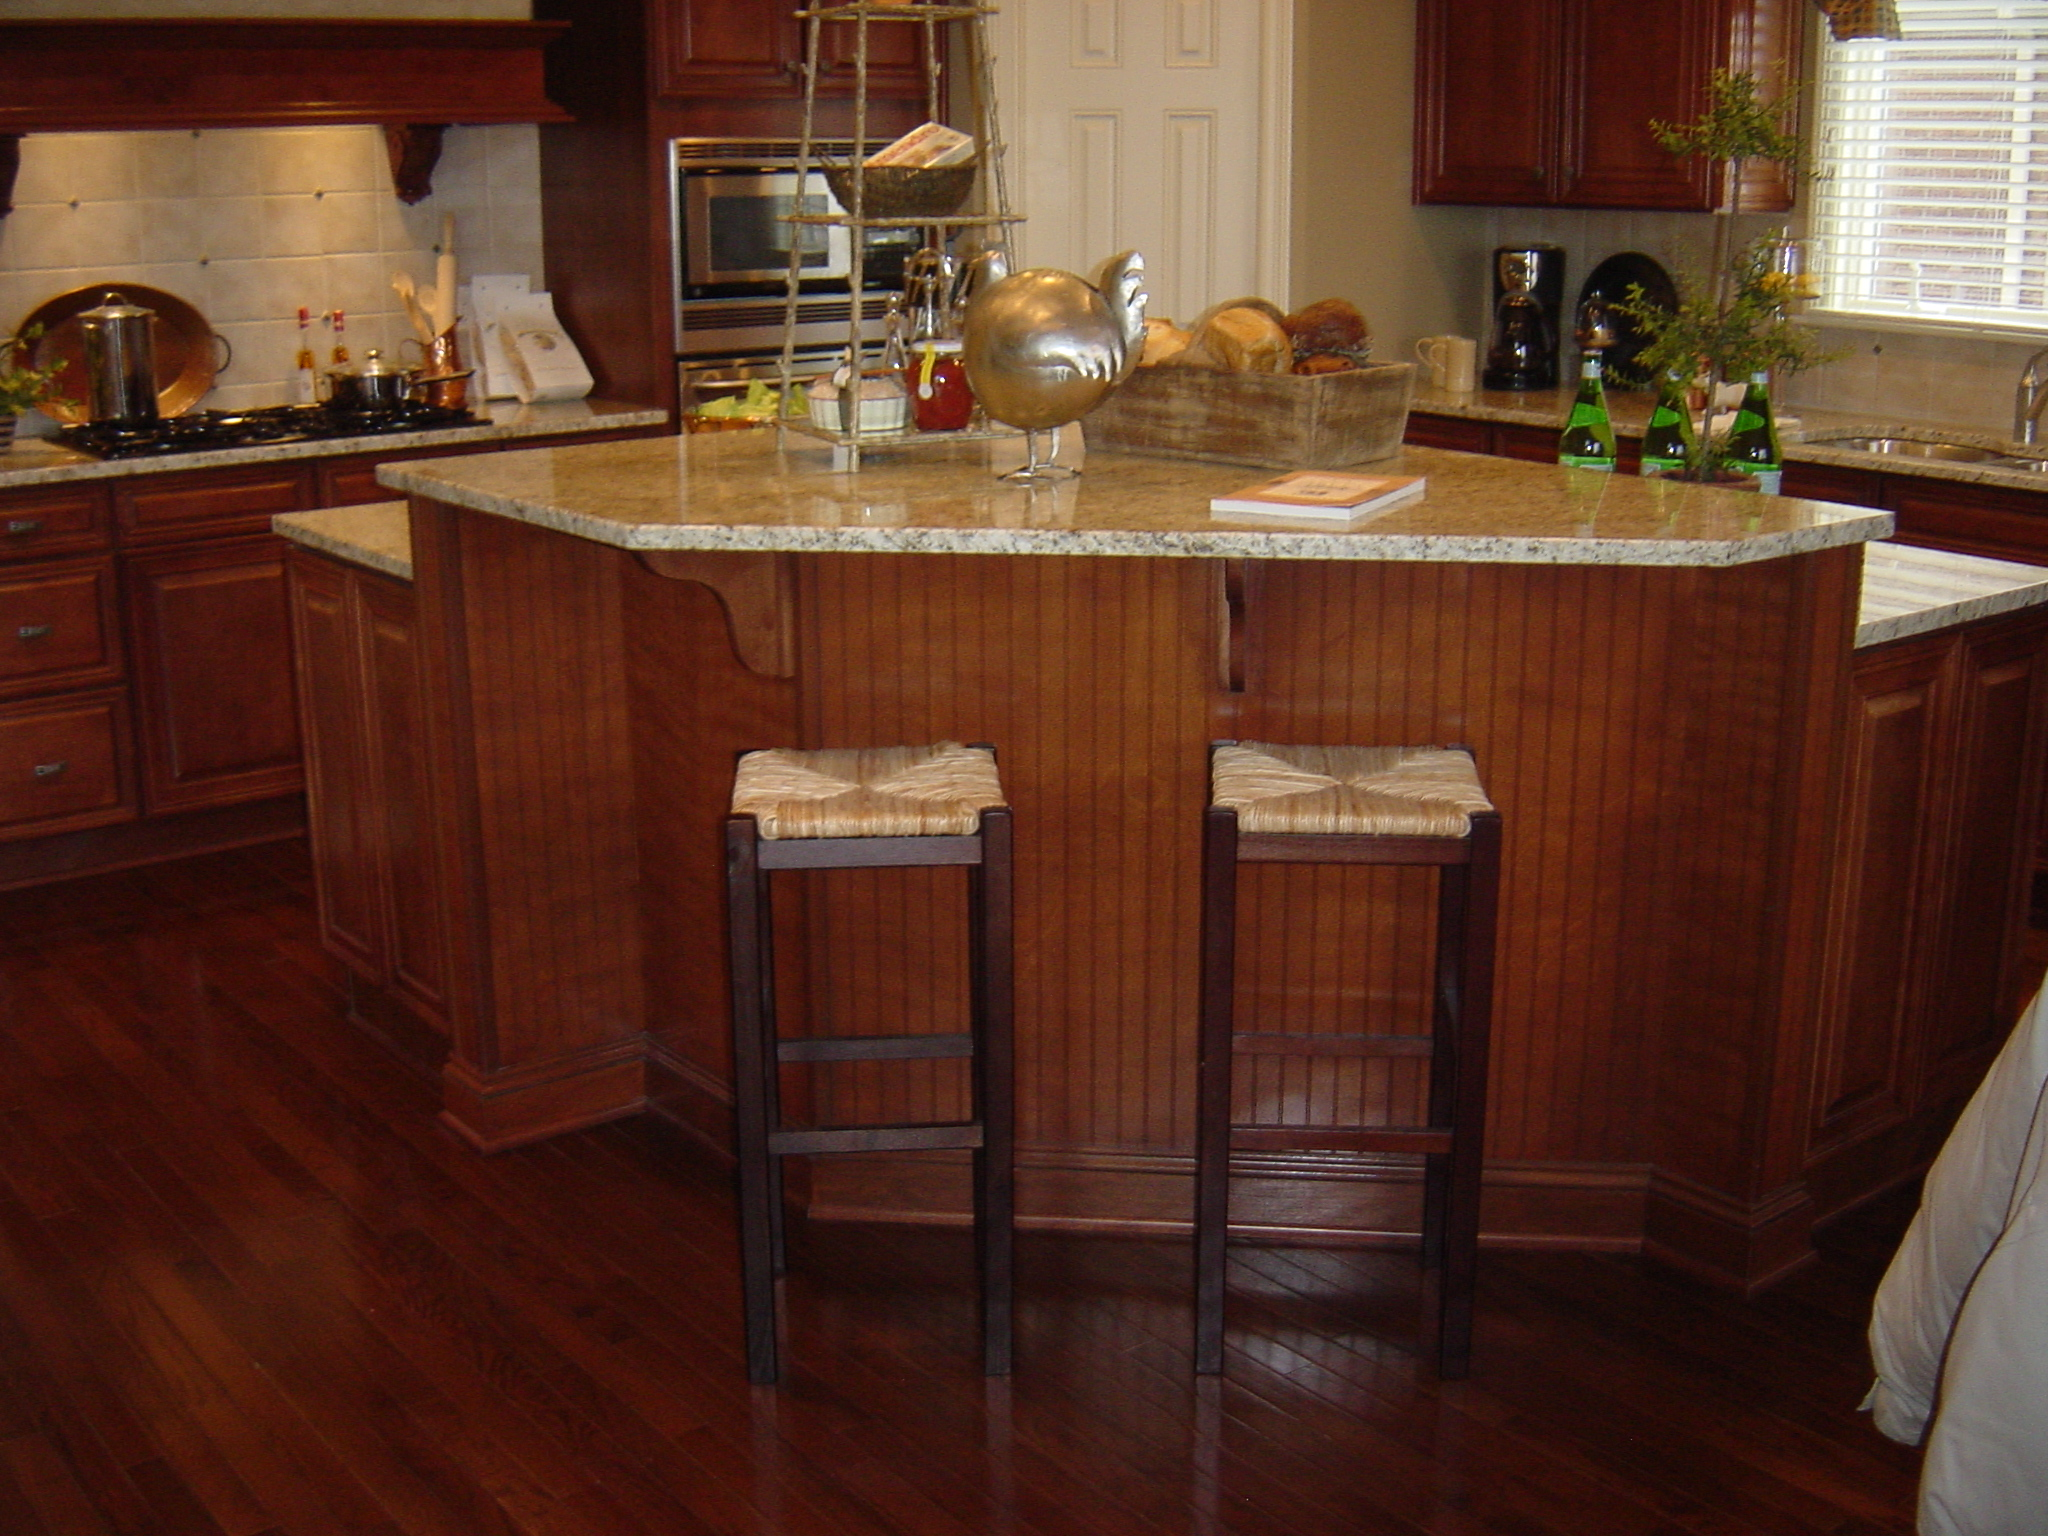 Florida kitchen decorating ideas cabinet decor interior for Kitchen cabinets hialeah